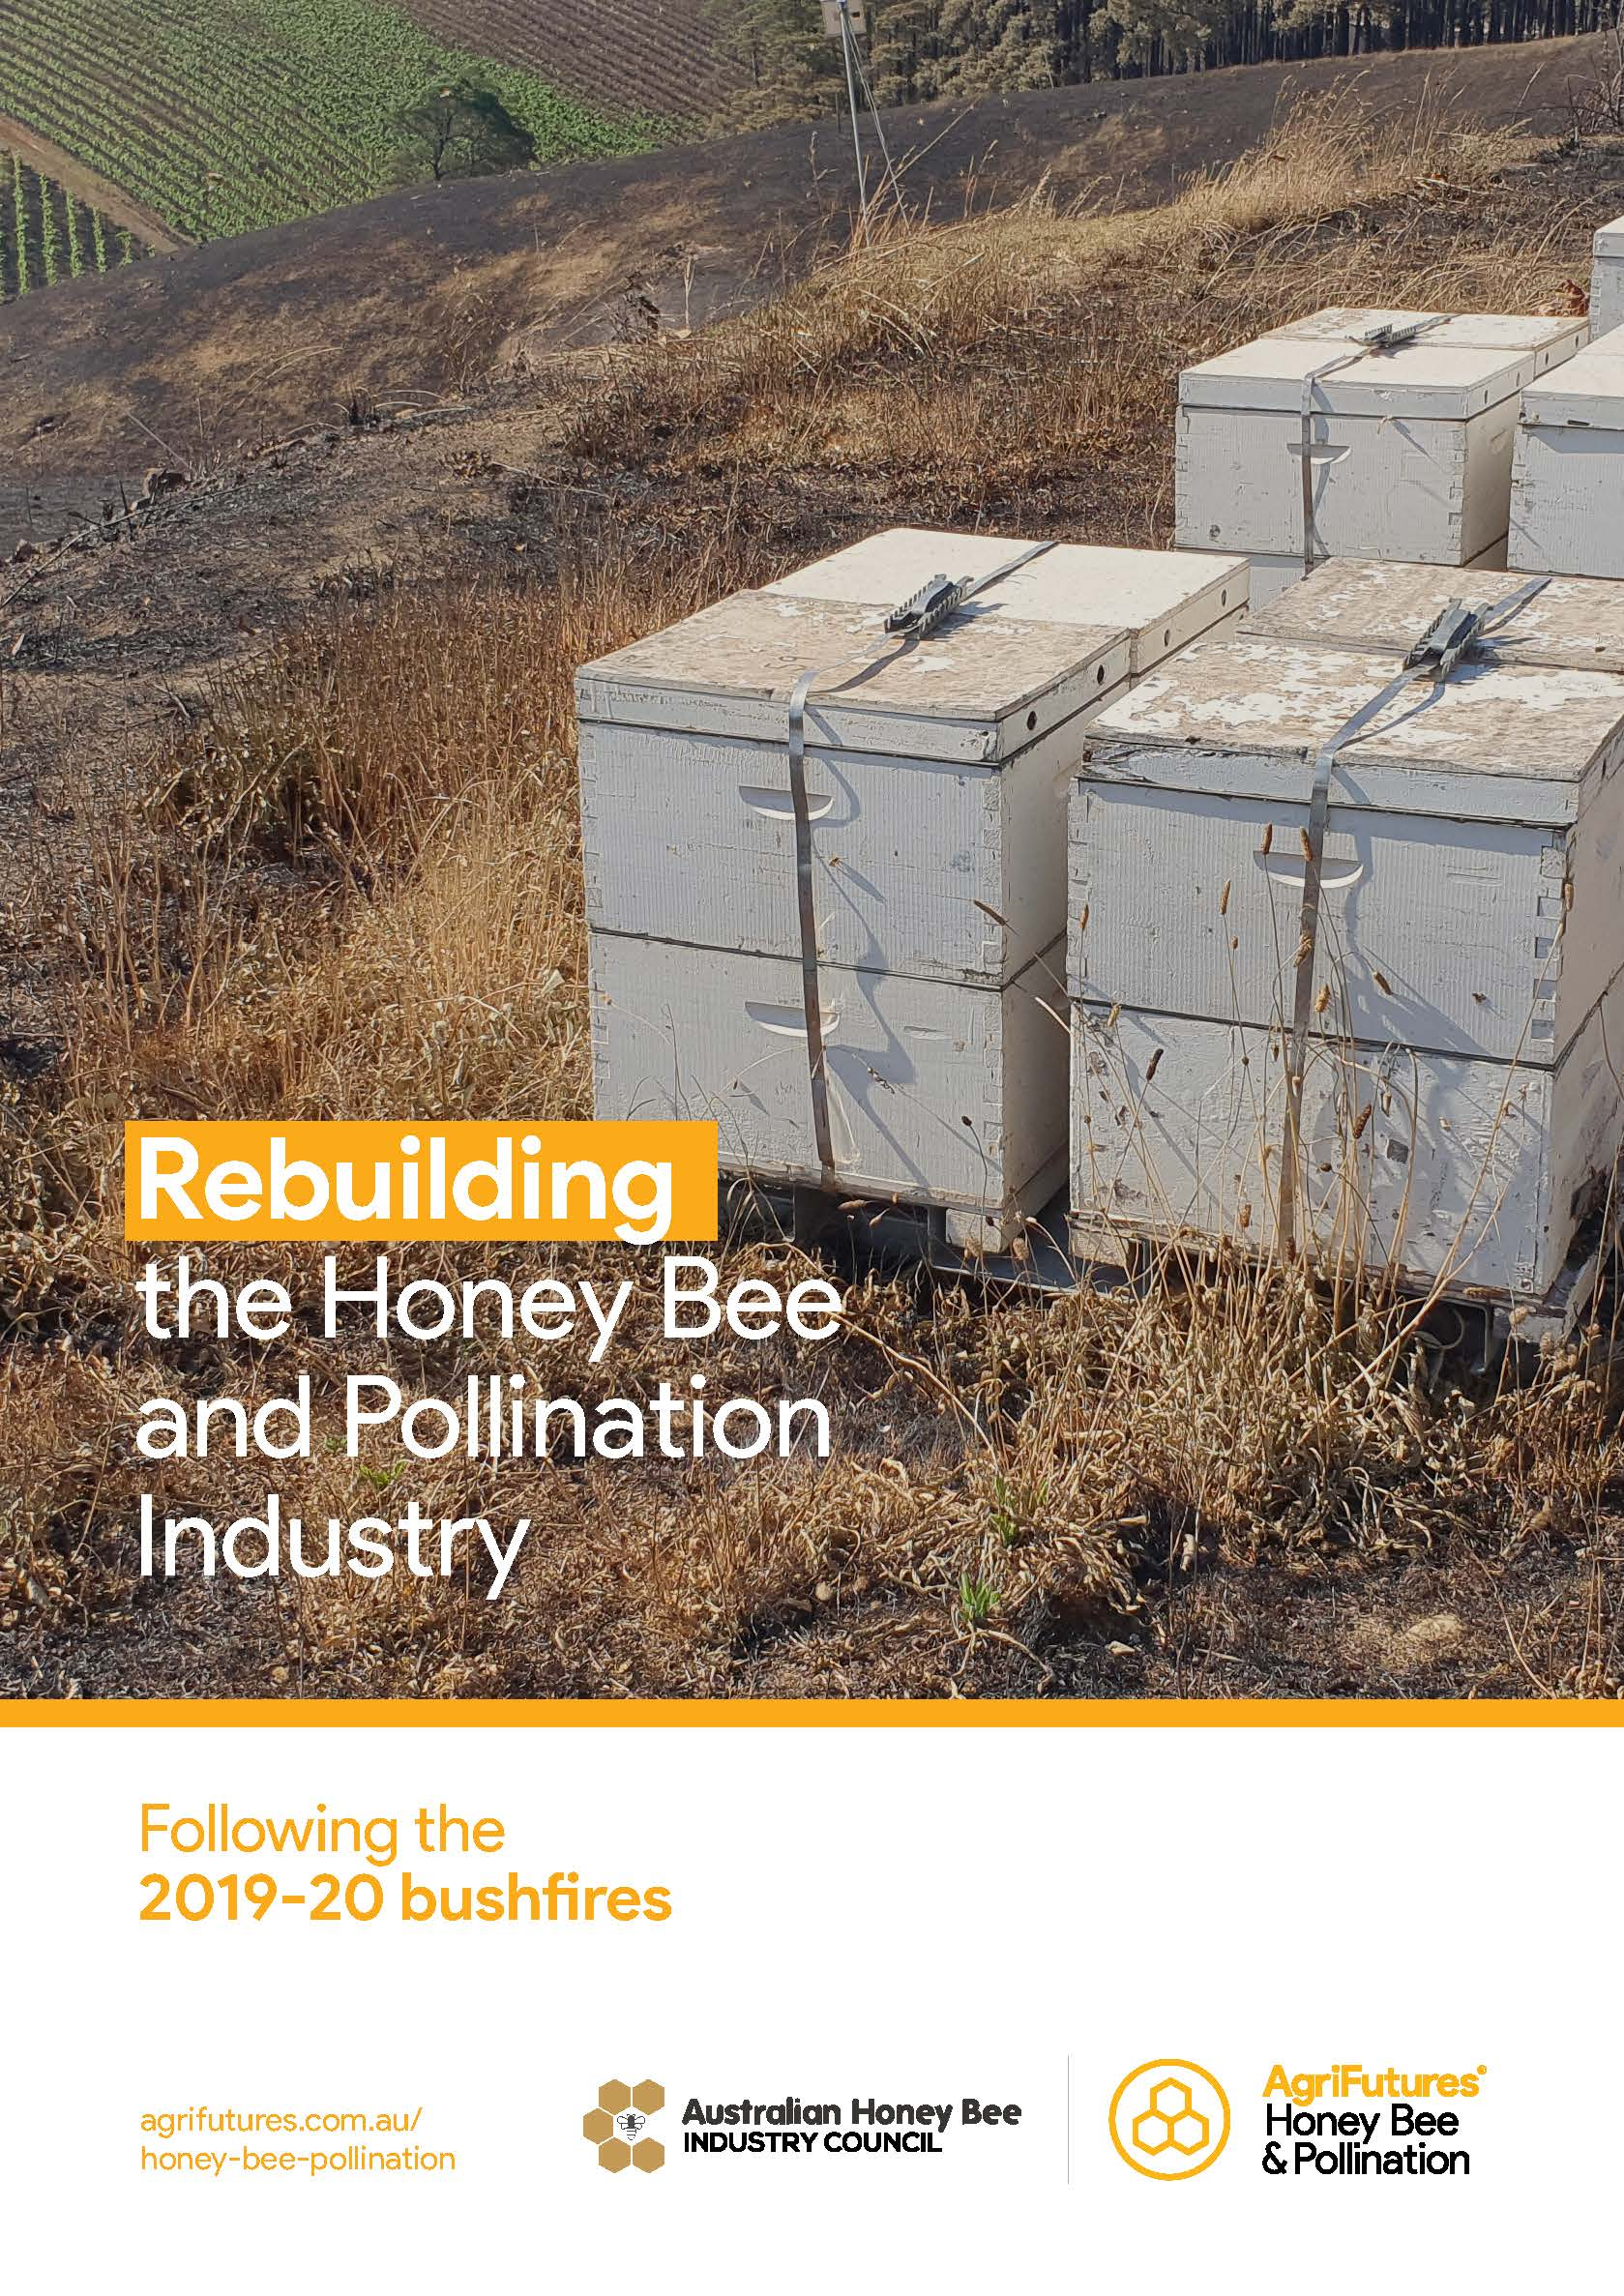 Rebuilding the Honey Bee and Pollination Industry - image